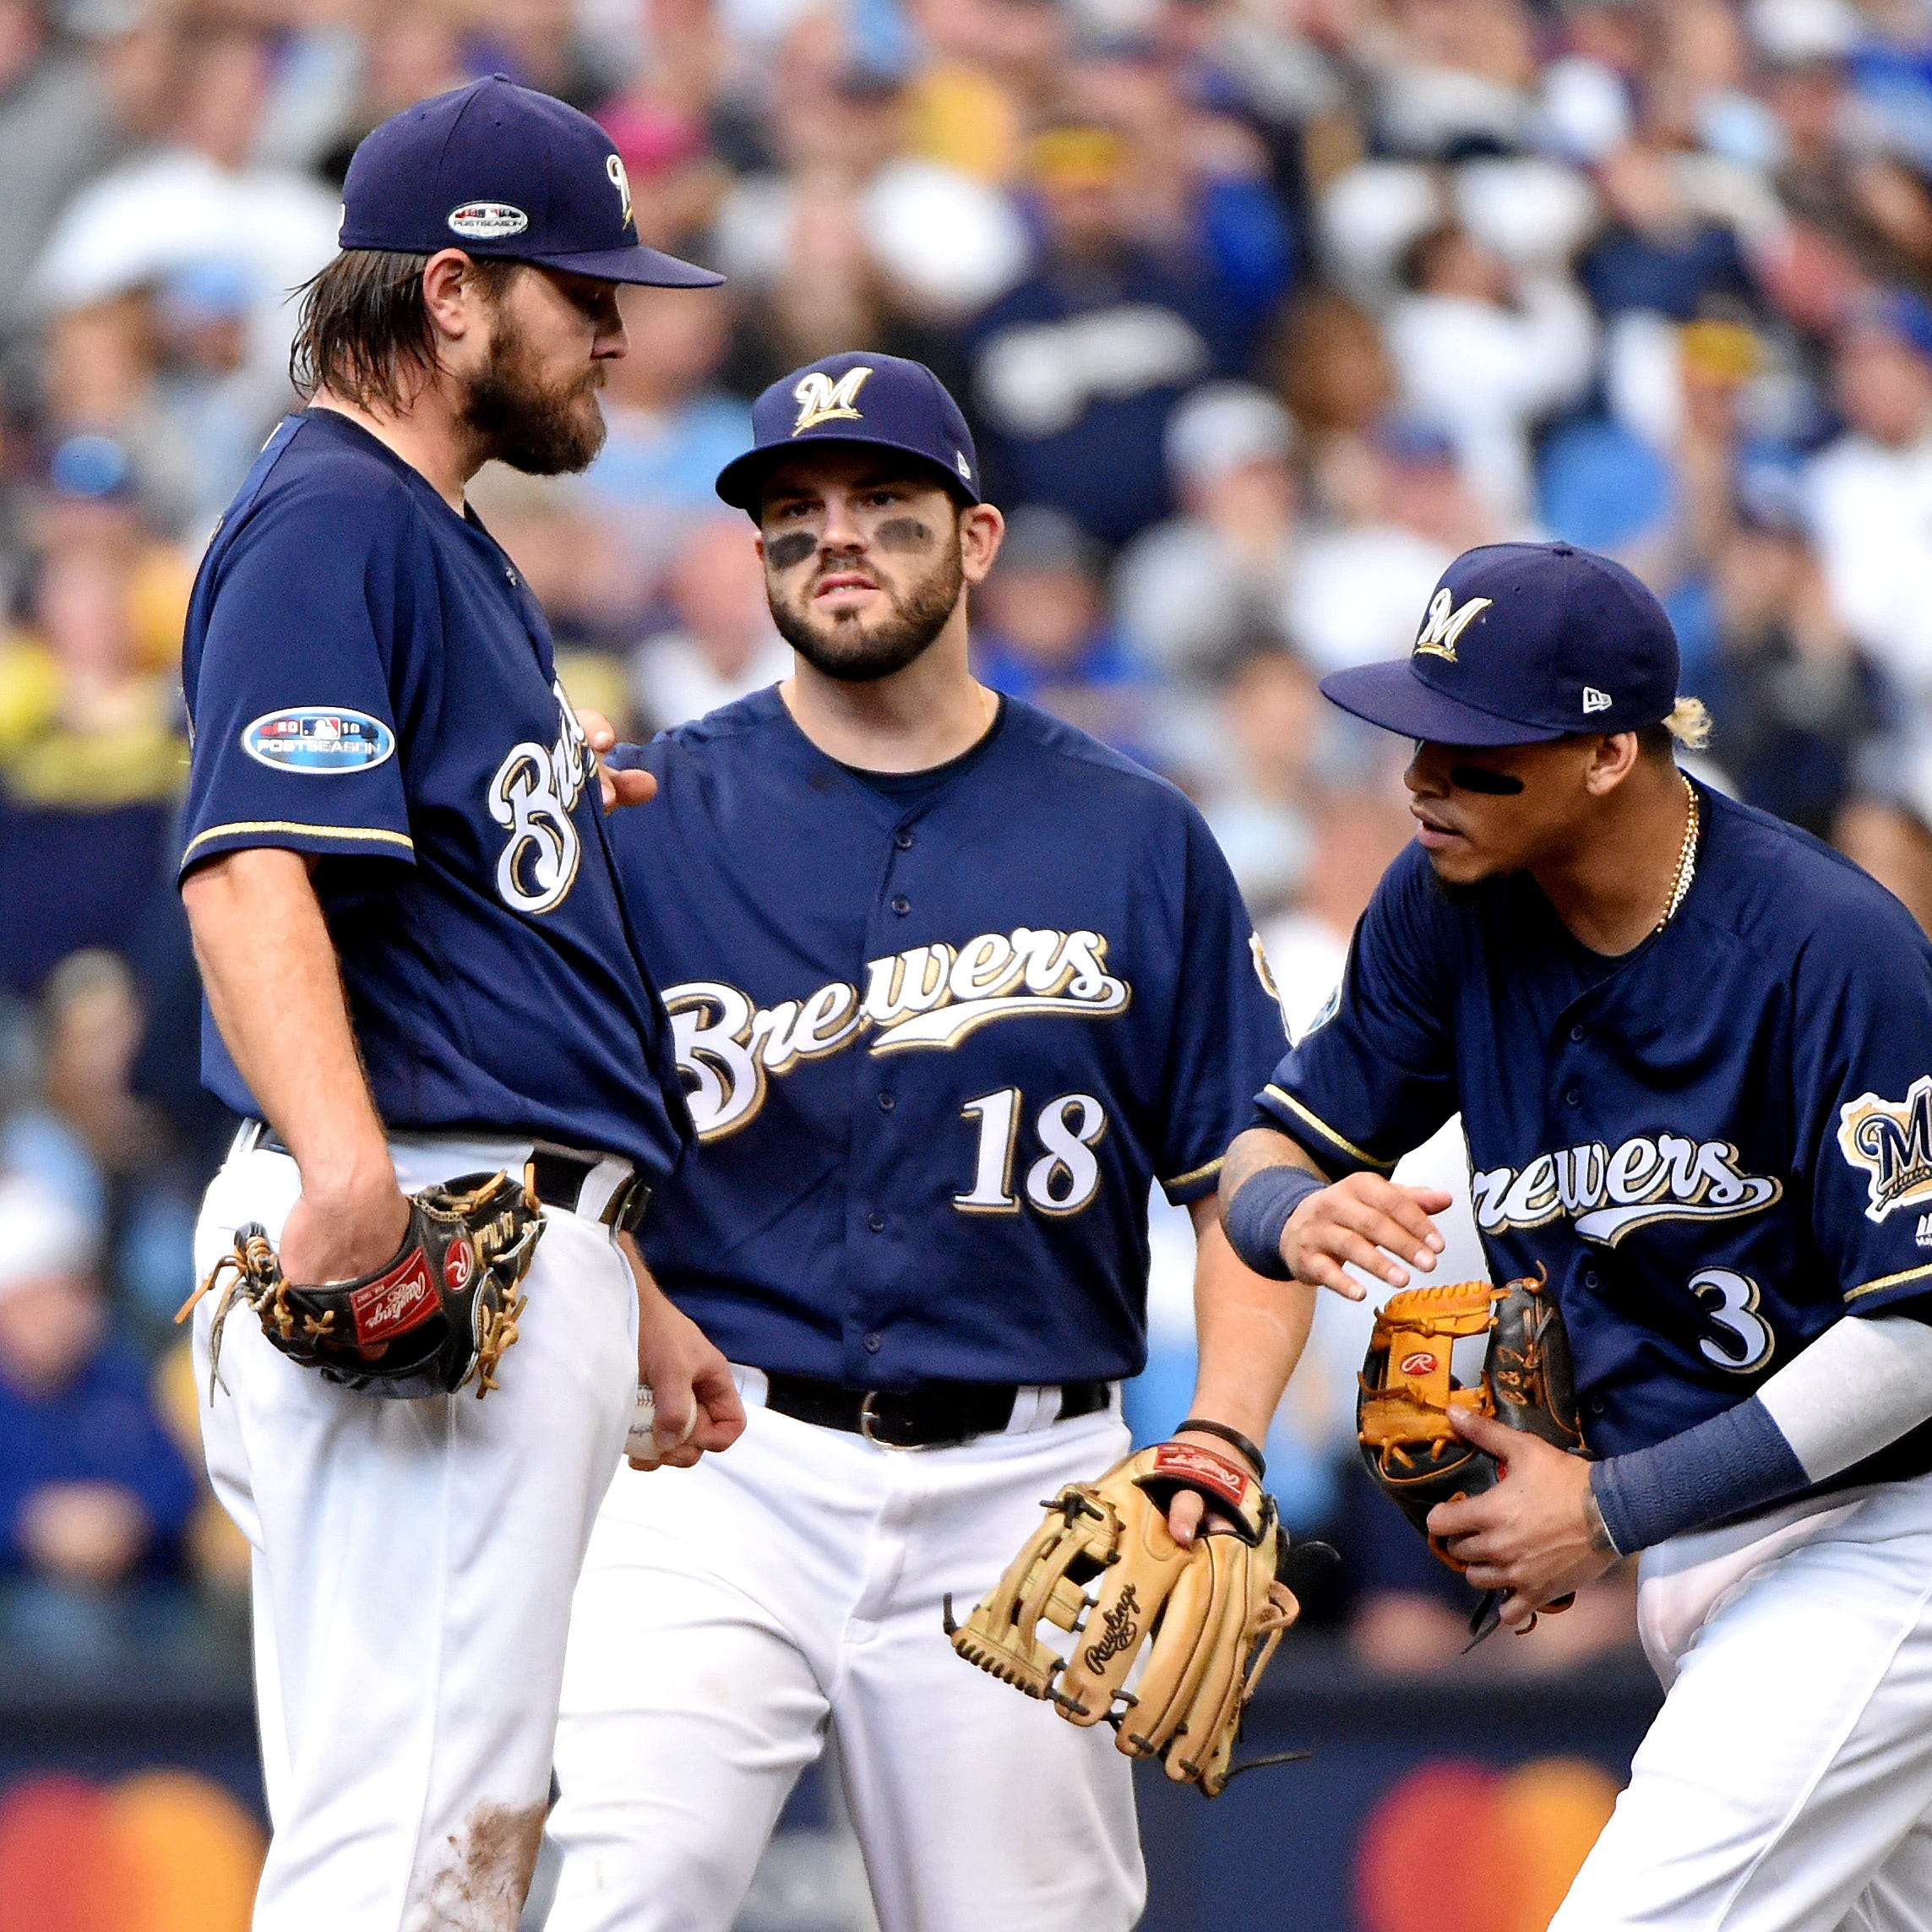 Notes: Craig Counsell still making no apologies for pulling Wade Miley after one batter